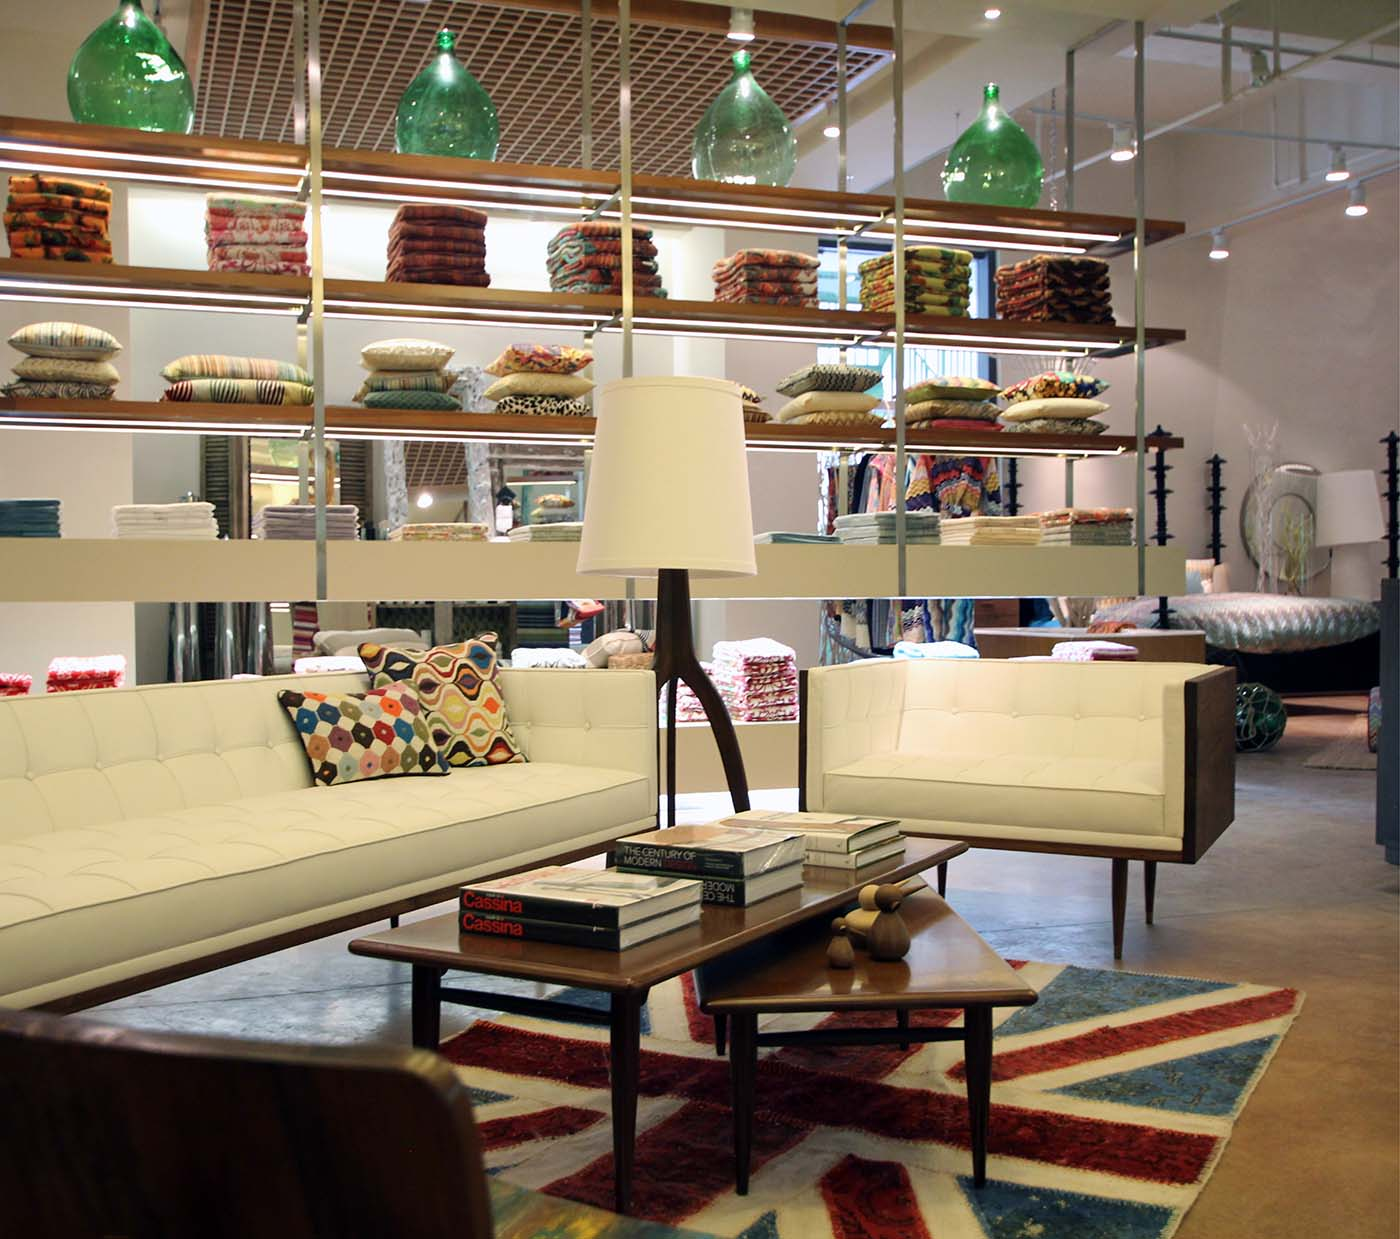 Chinese retail shop showing sofas and pillows.